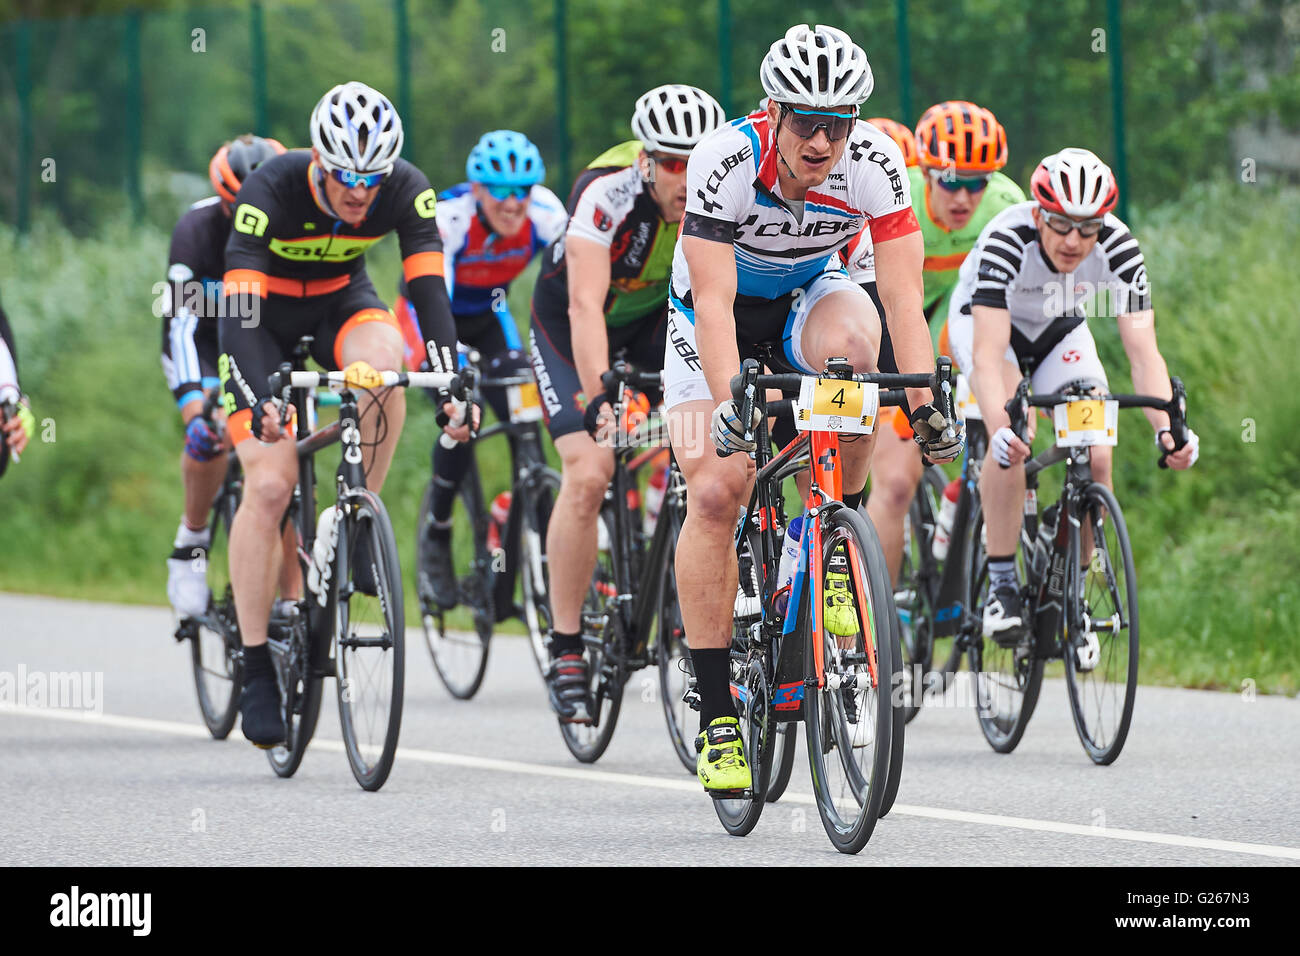 Cazis, Switzerland. May 24, 2016. Riders compete during the Criterium Race of the Cycling Grison Cup Series in Cazis. Stock Photo